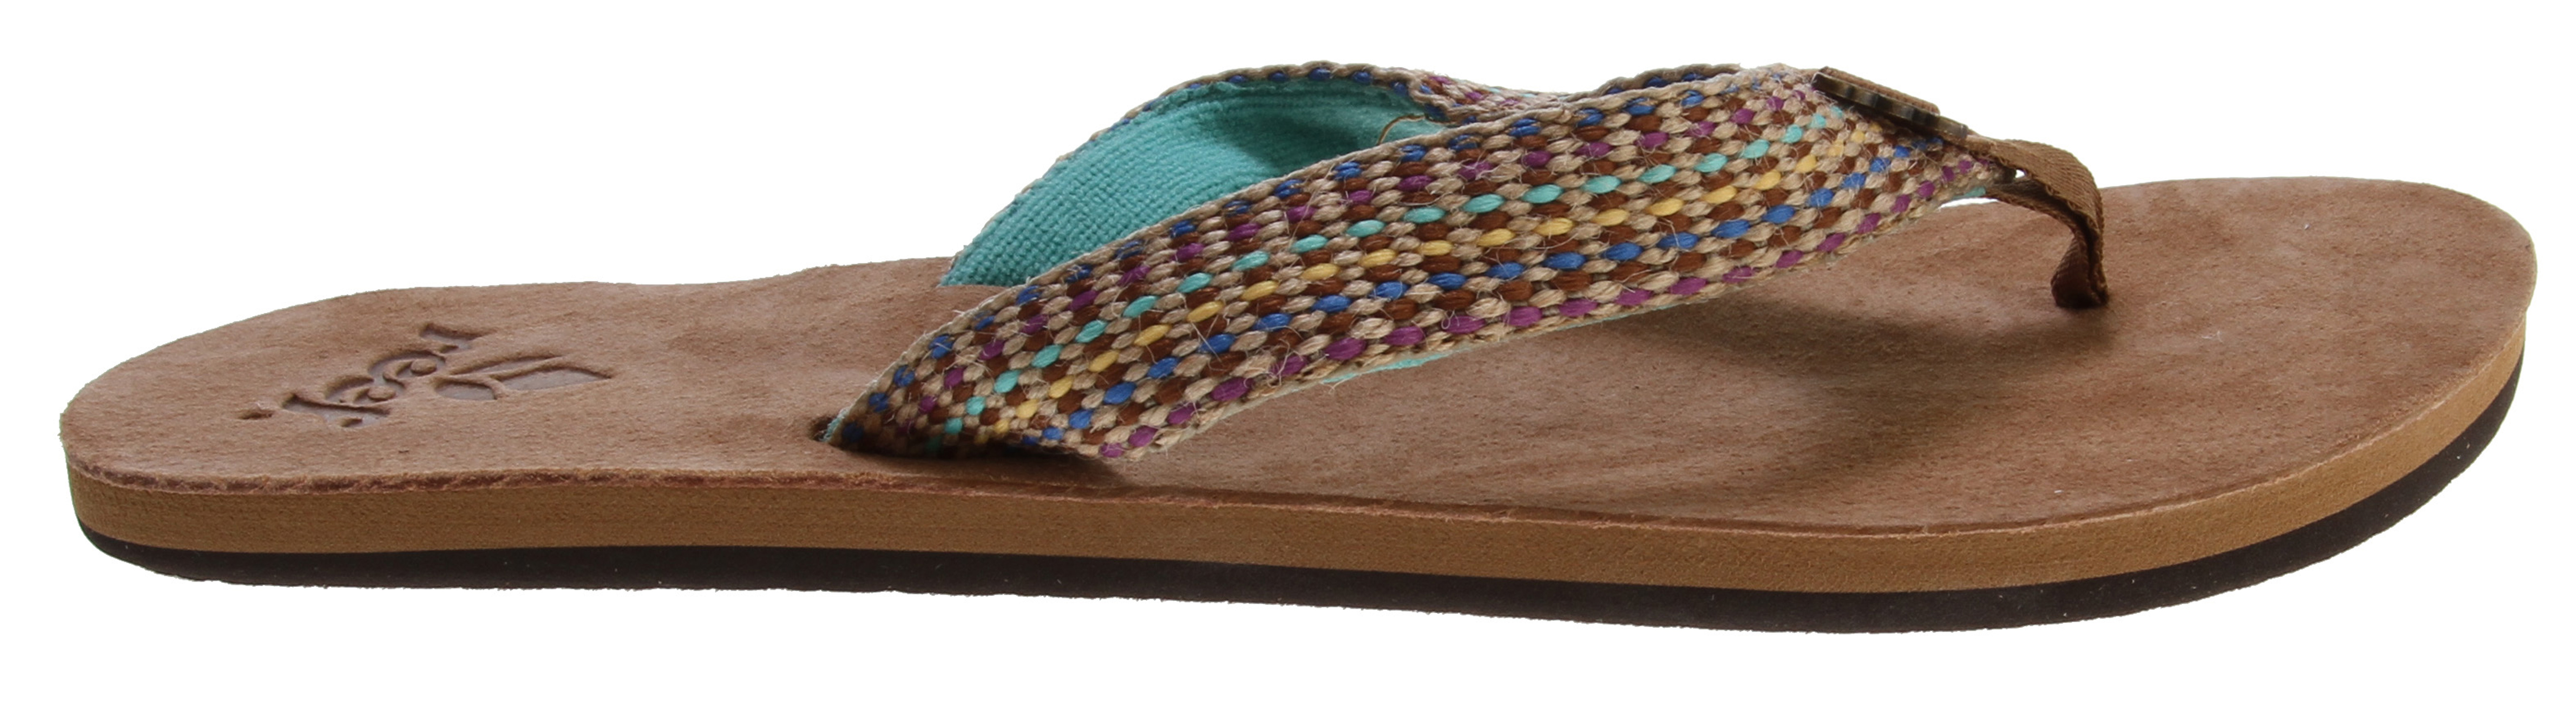 Surf Key Features of the Reef Gypsylove Sandals: Woven strap with ultra soft terry cloth lining Suede leather toepost overlay; woven polyester toepost Soft suede leather footbed with anatomical arch support Rubber sponge outsole for flexibility - $23.95